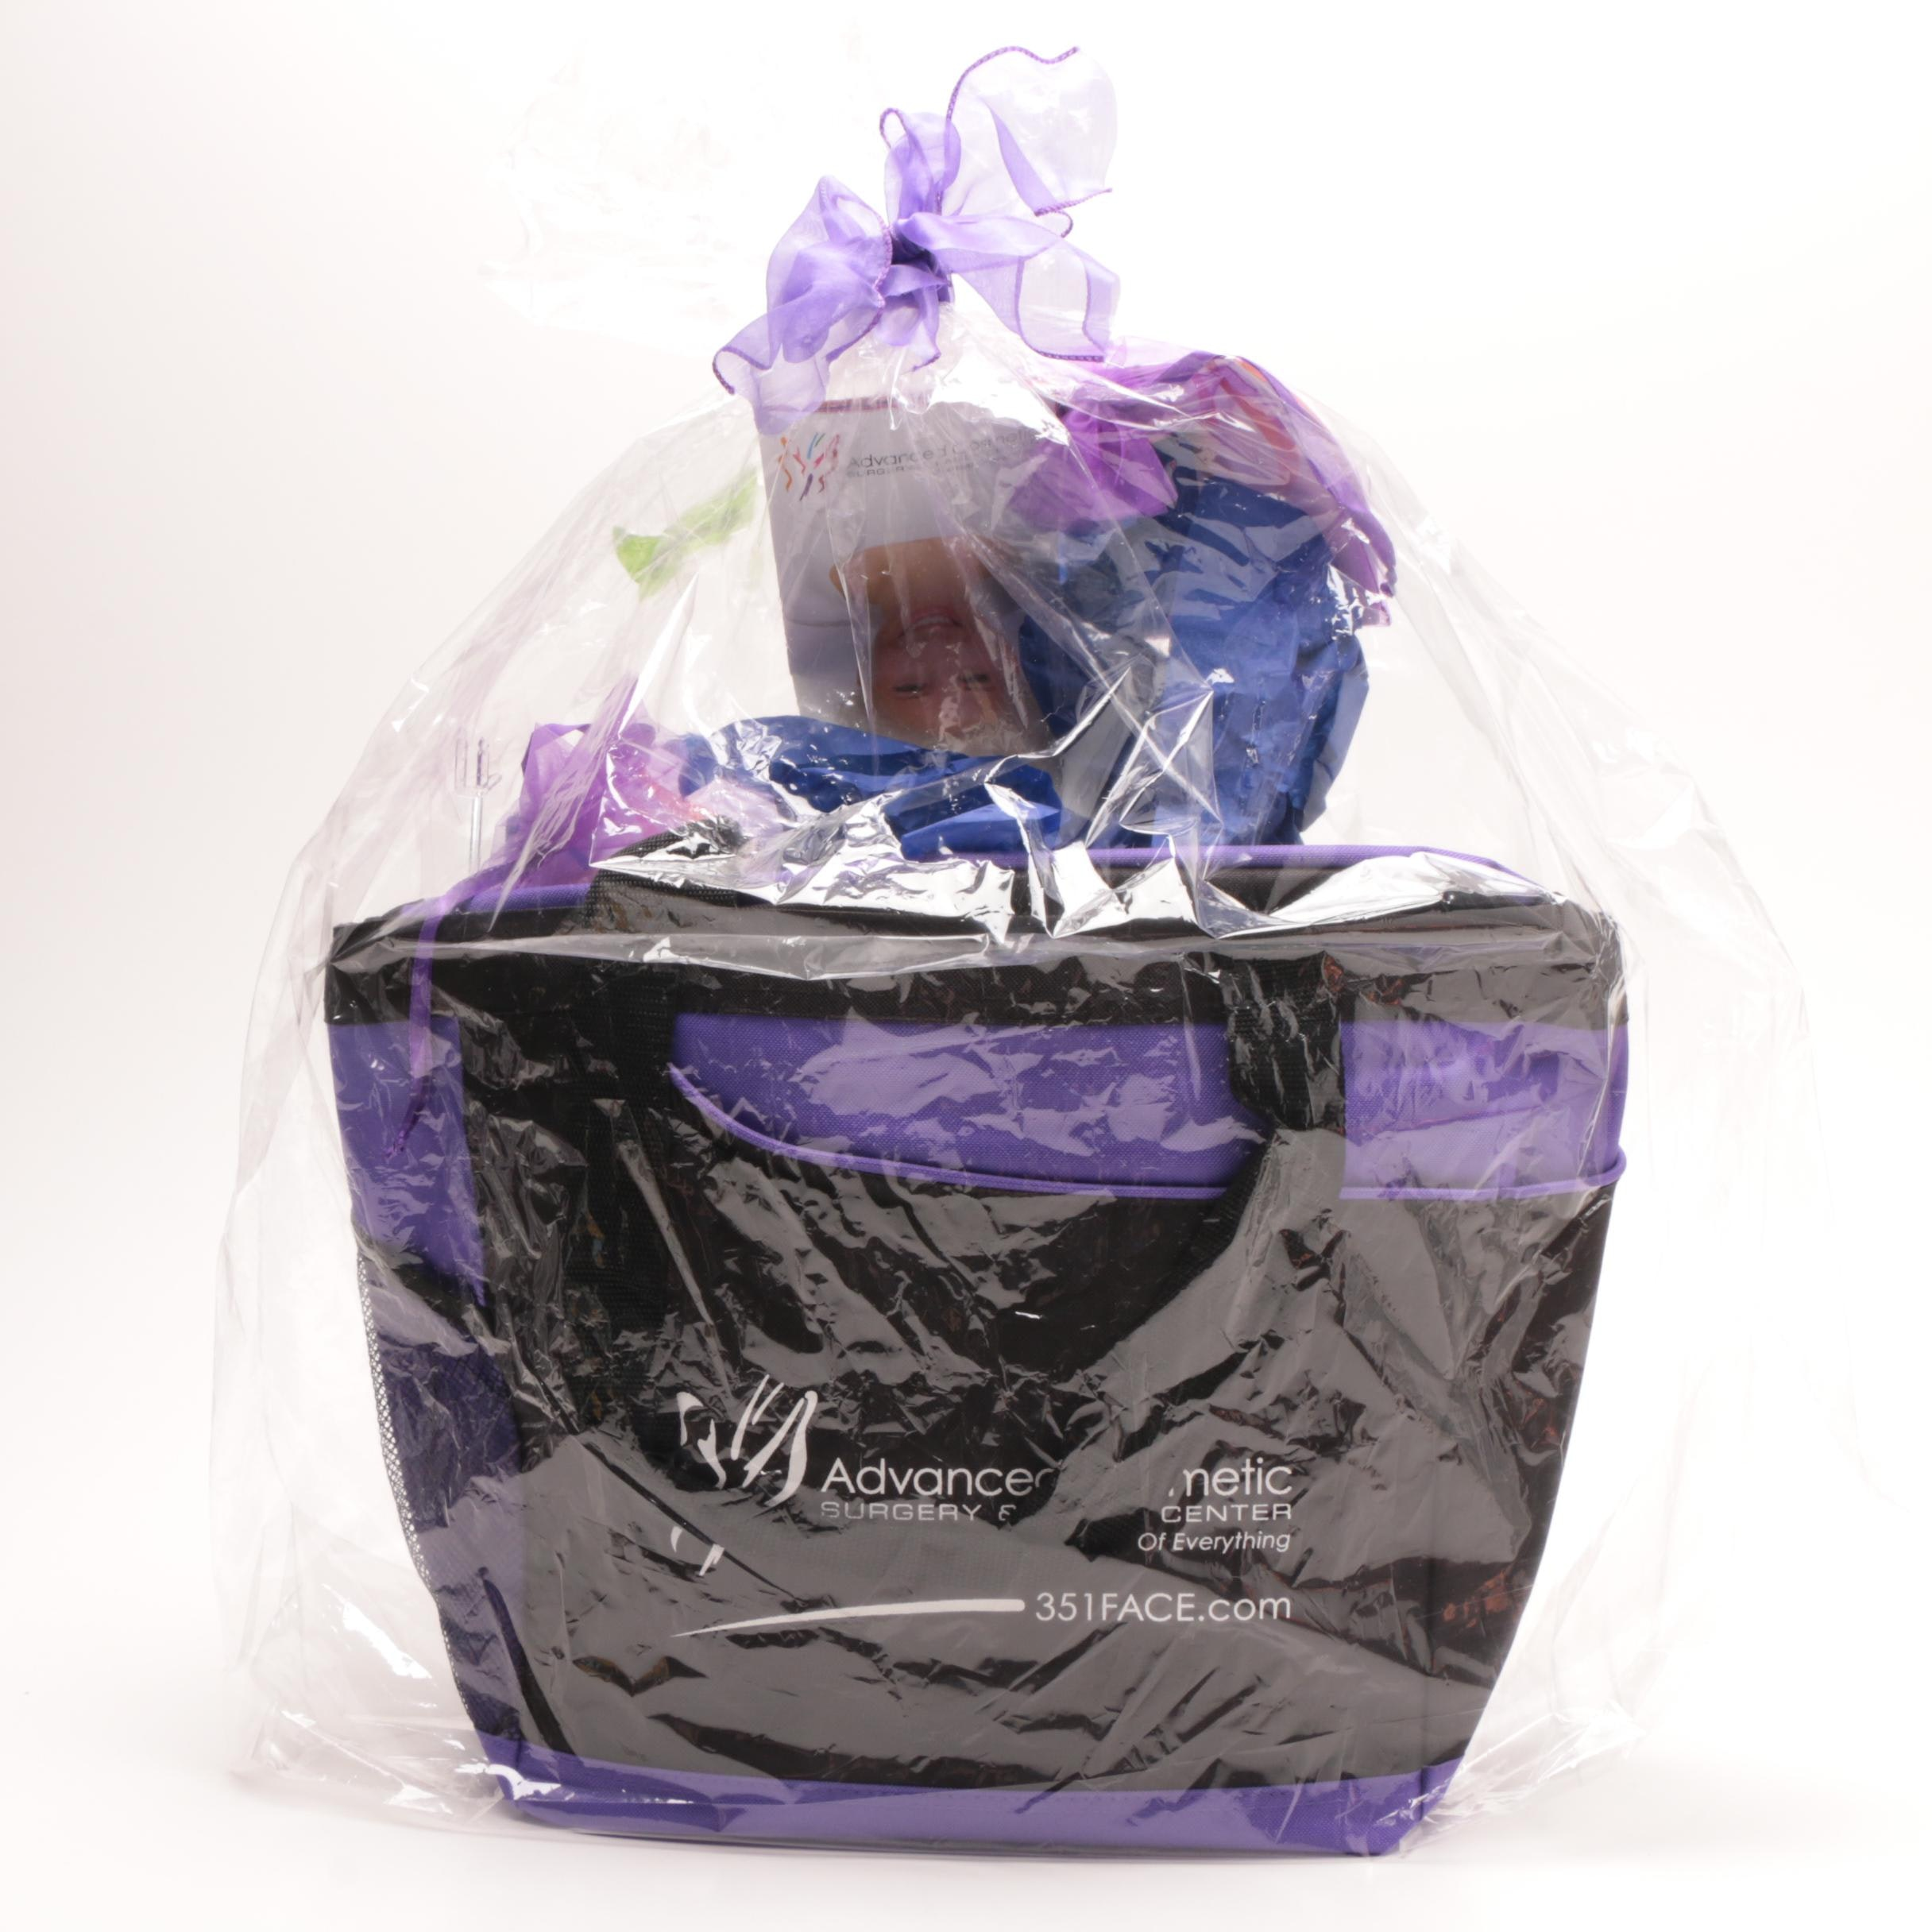 Advanced Cosmetic Surgery & Laser Center Edwards Road Cincinnati Gift Bag